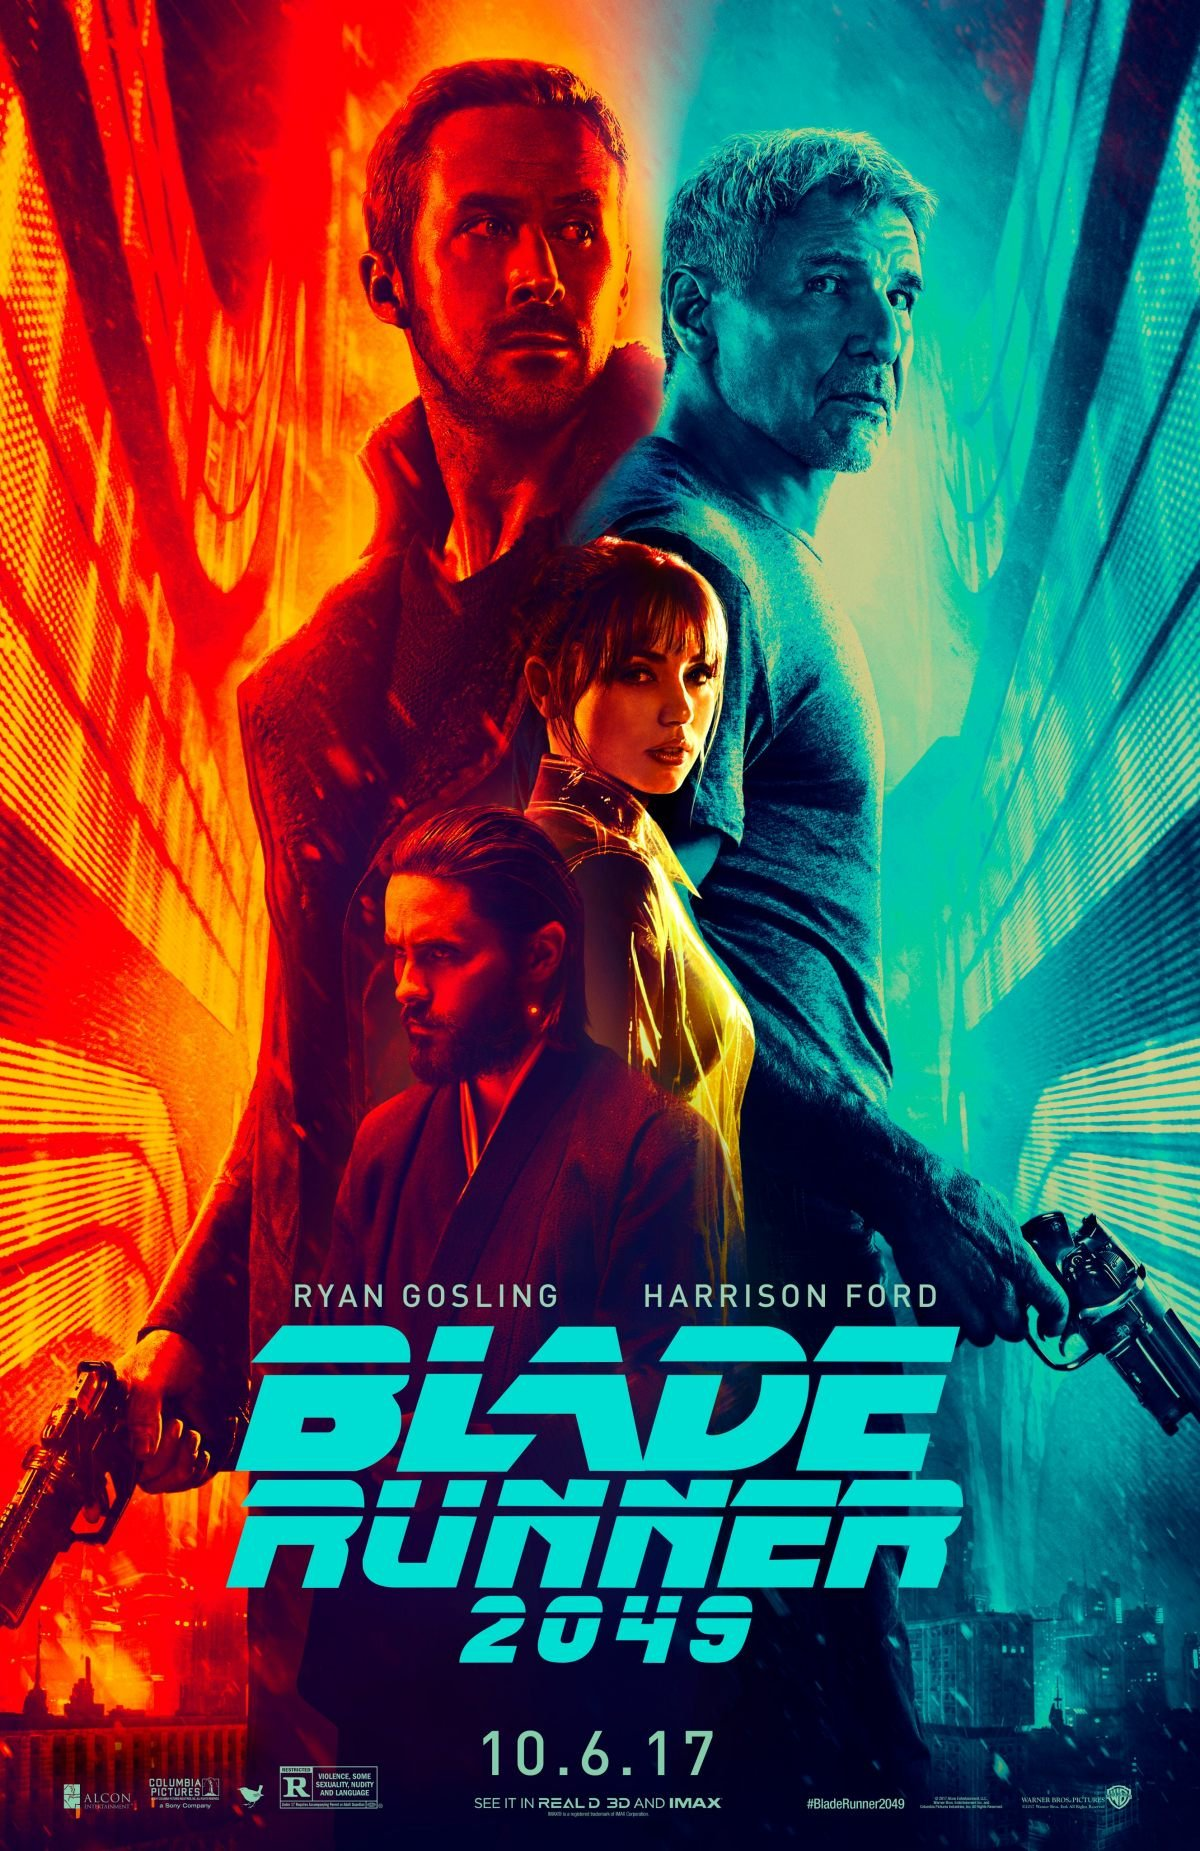 Extraordinary Visual Effects for Blade Runner 2049